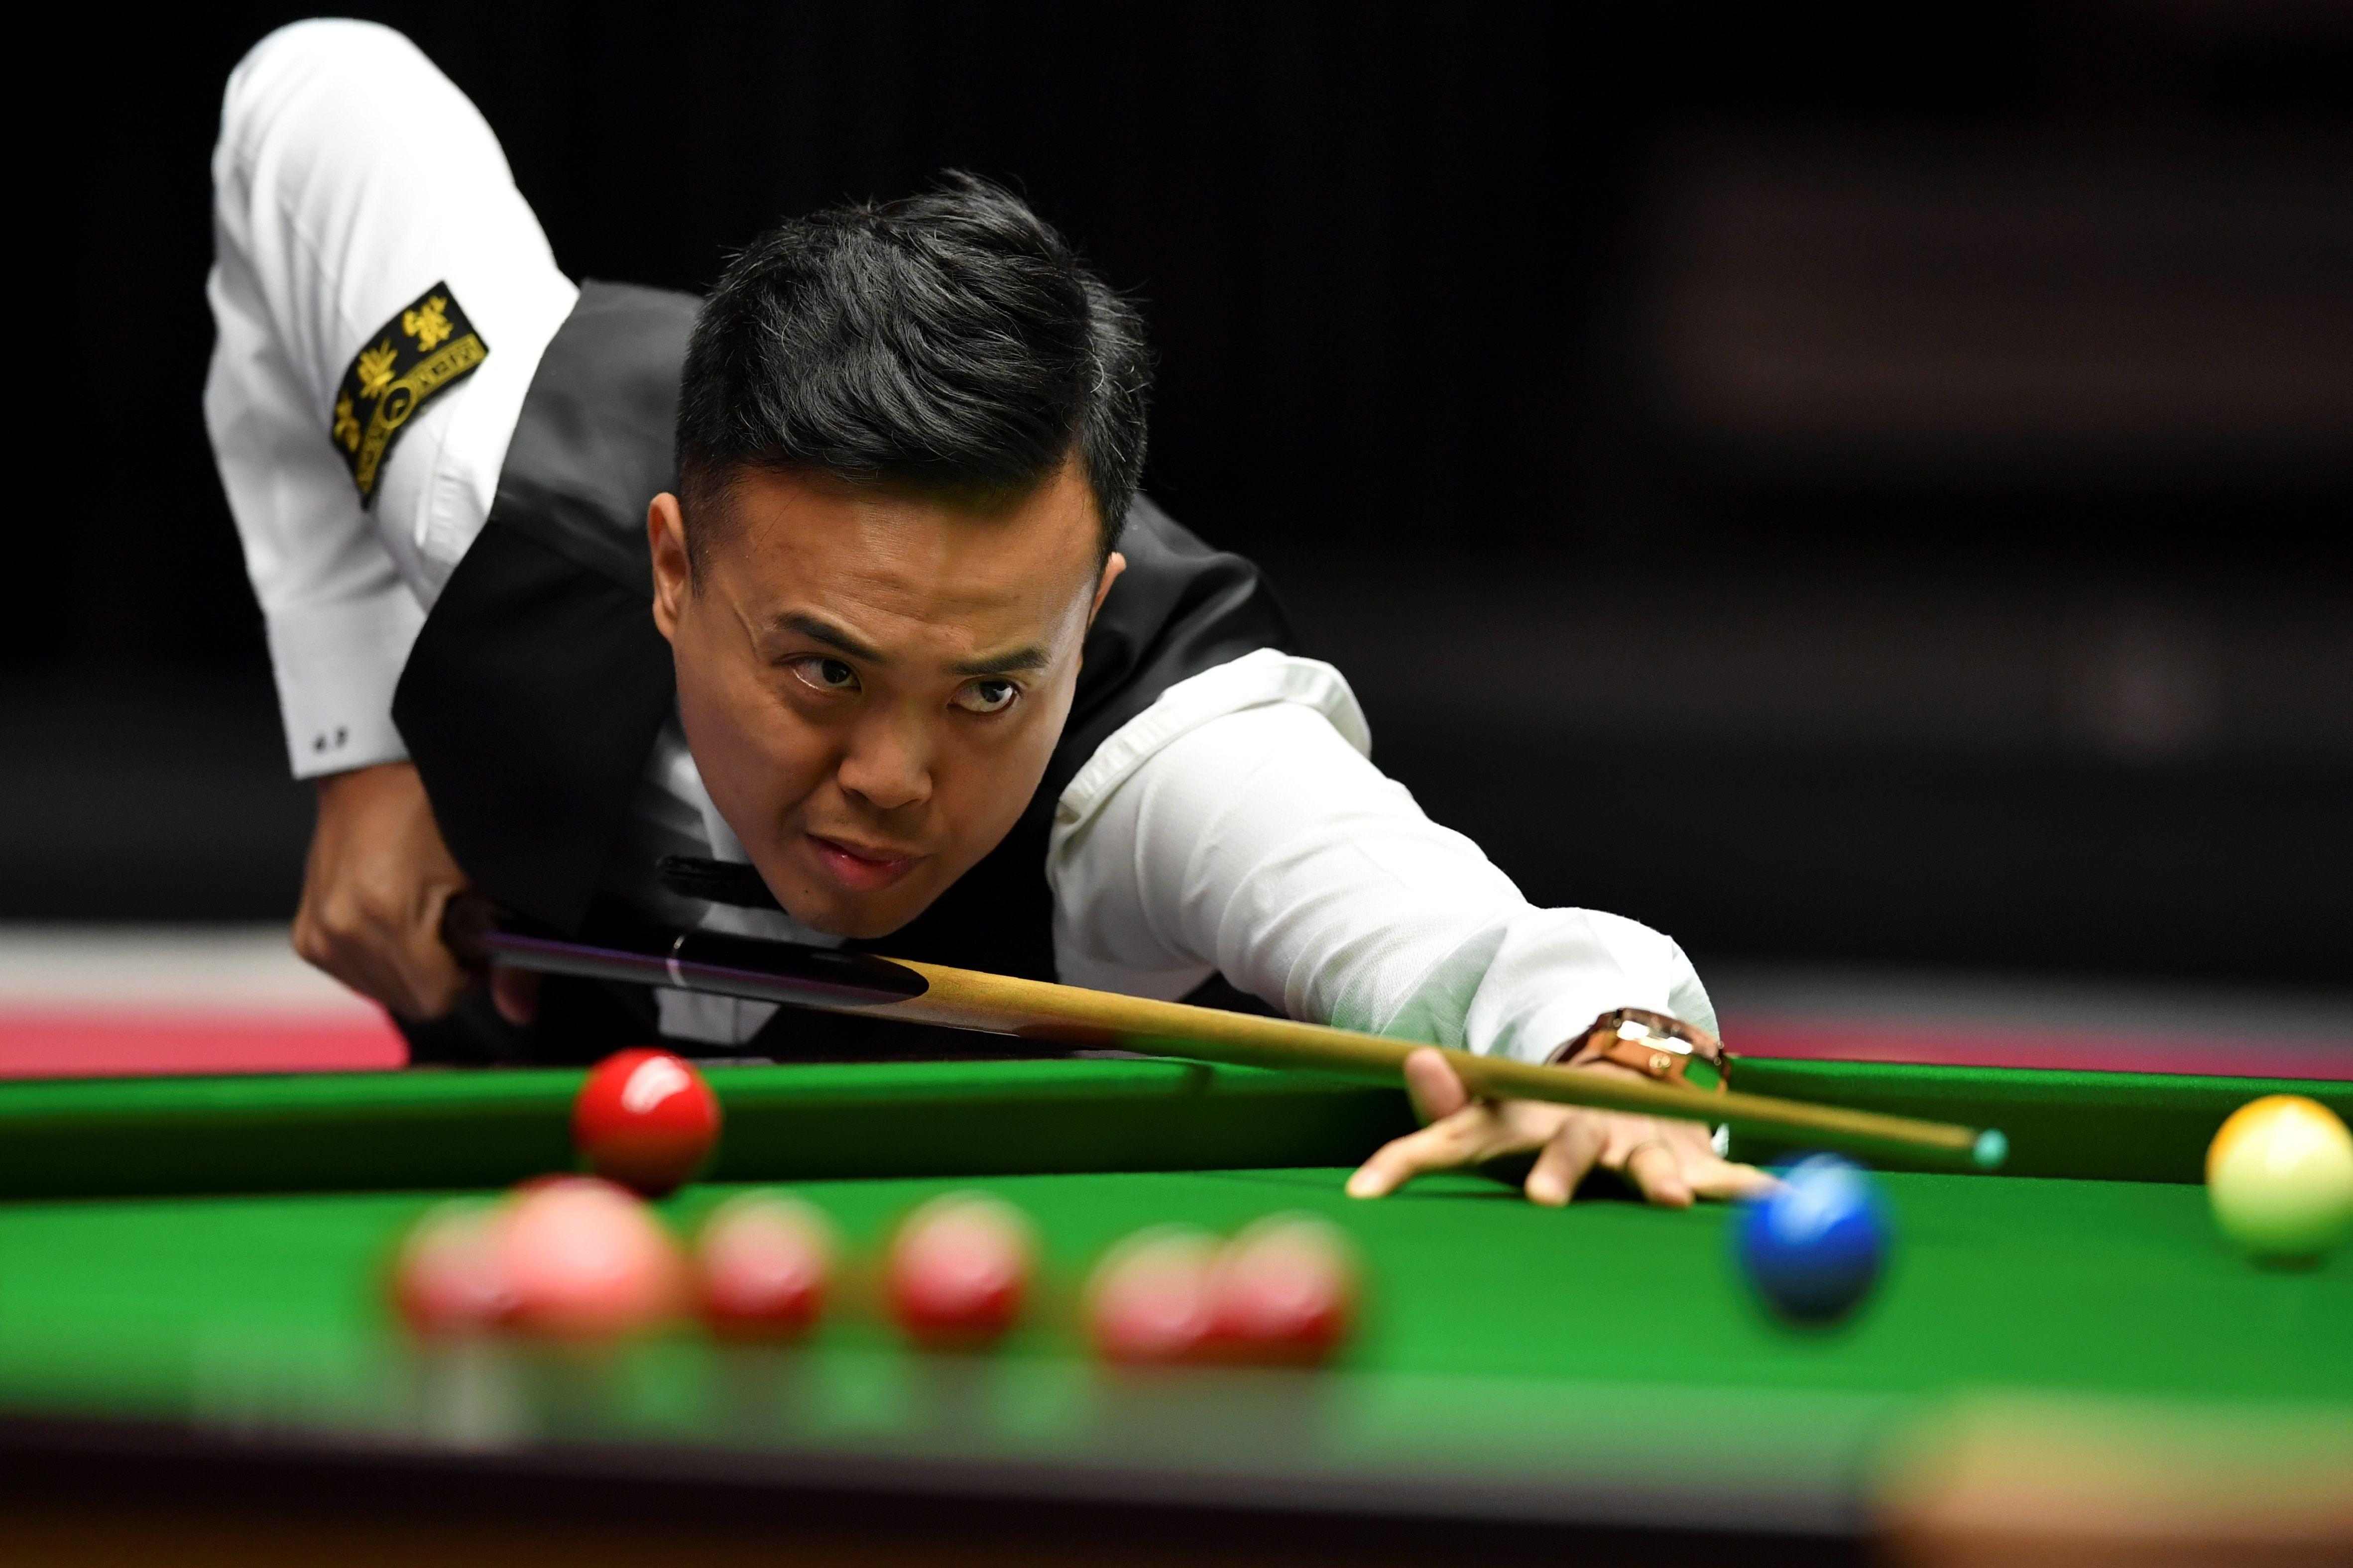 Marco Fu came out on top against veteran former world champion Peter Ebdon